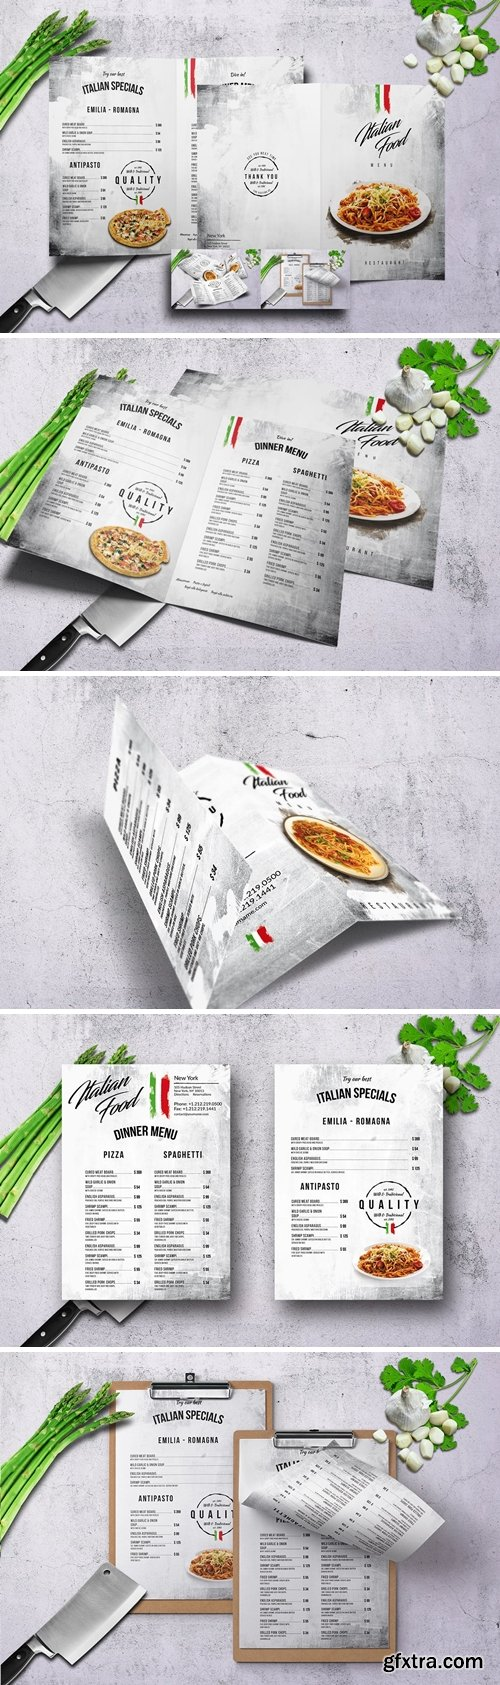 Italian Food Menu Bundle V2